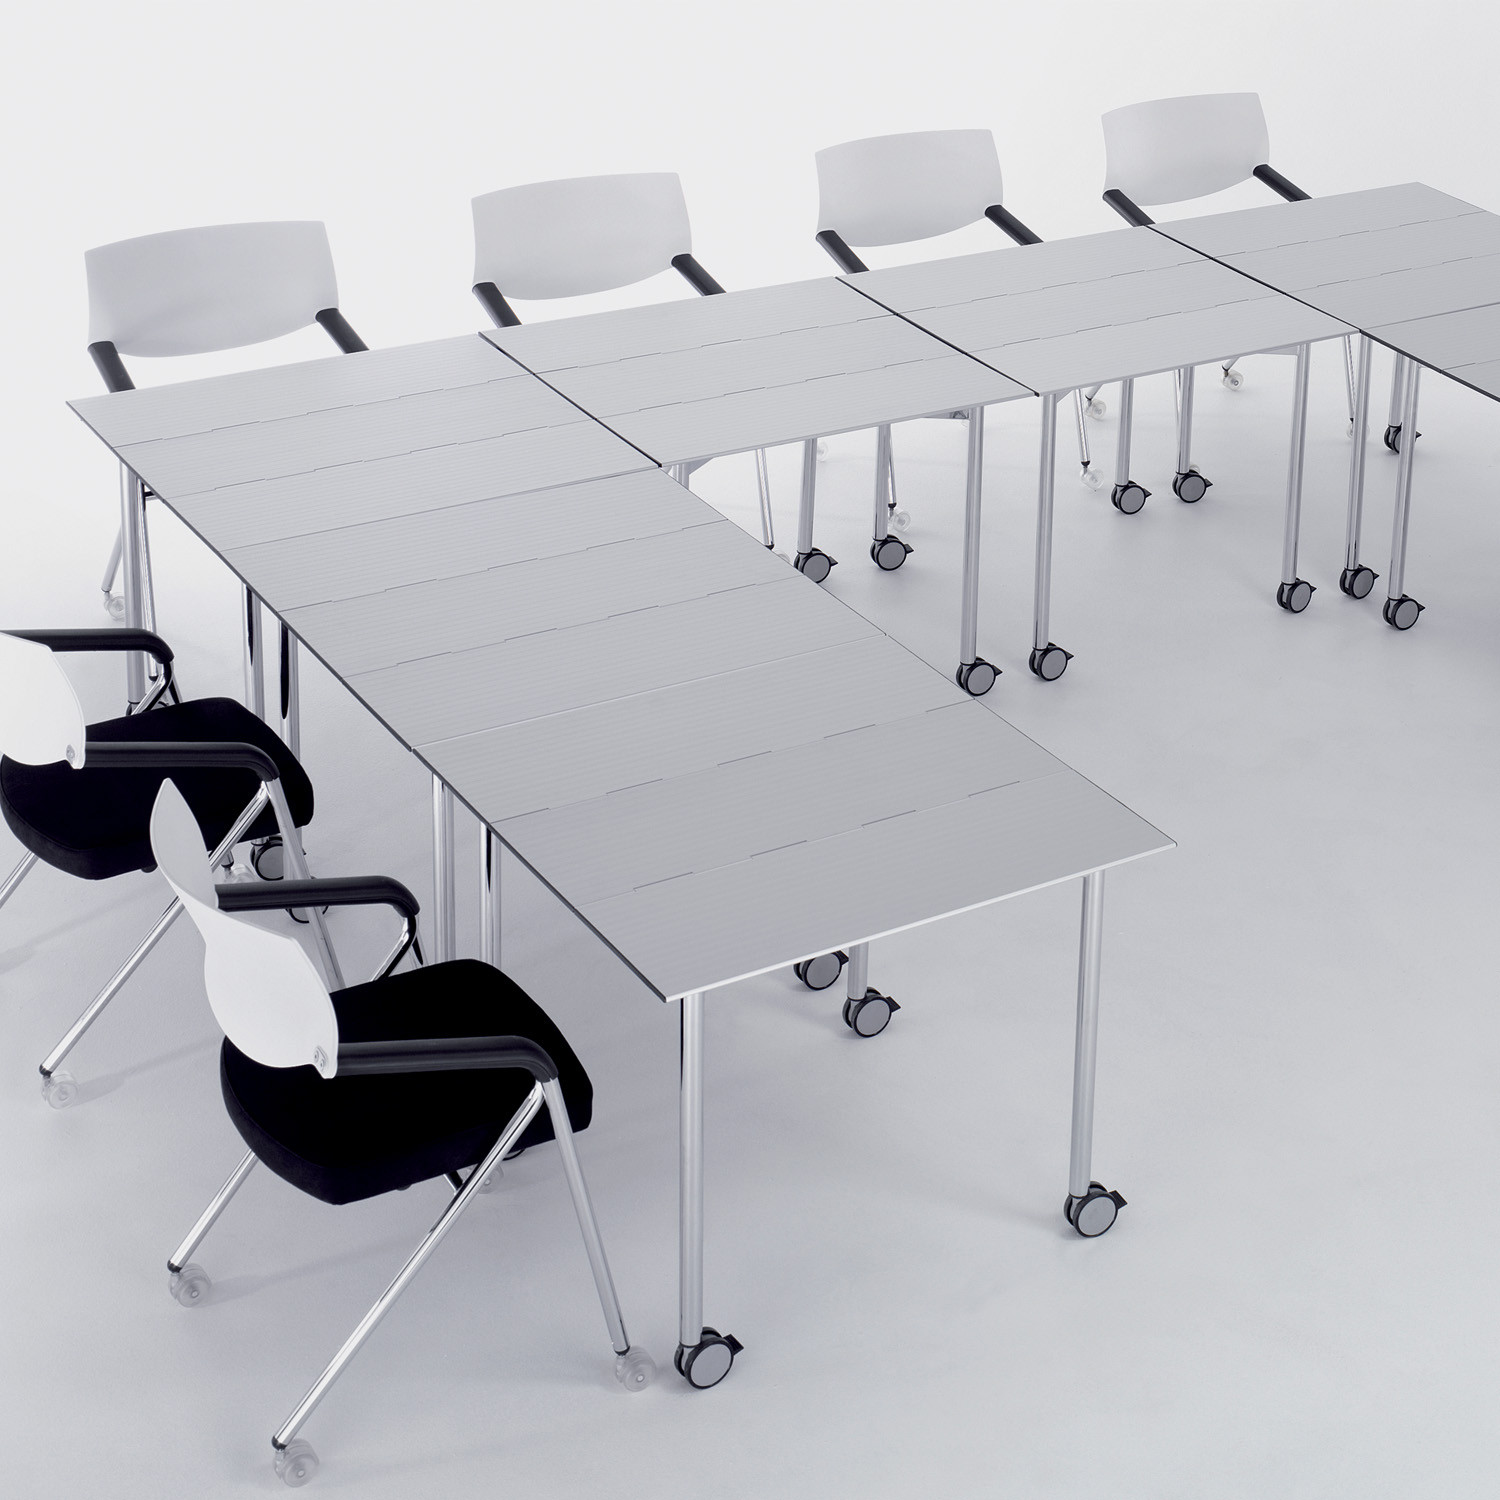 Join Me Training Tables by Dauphin